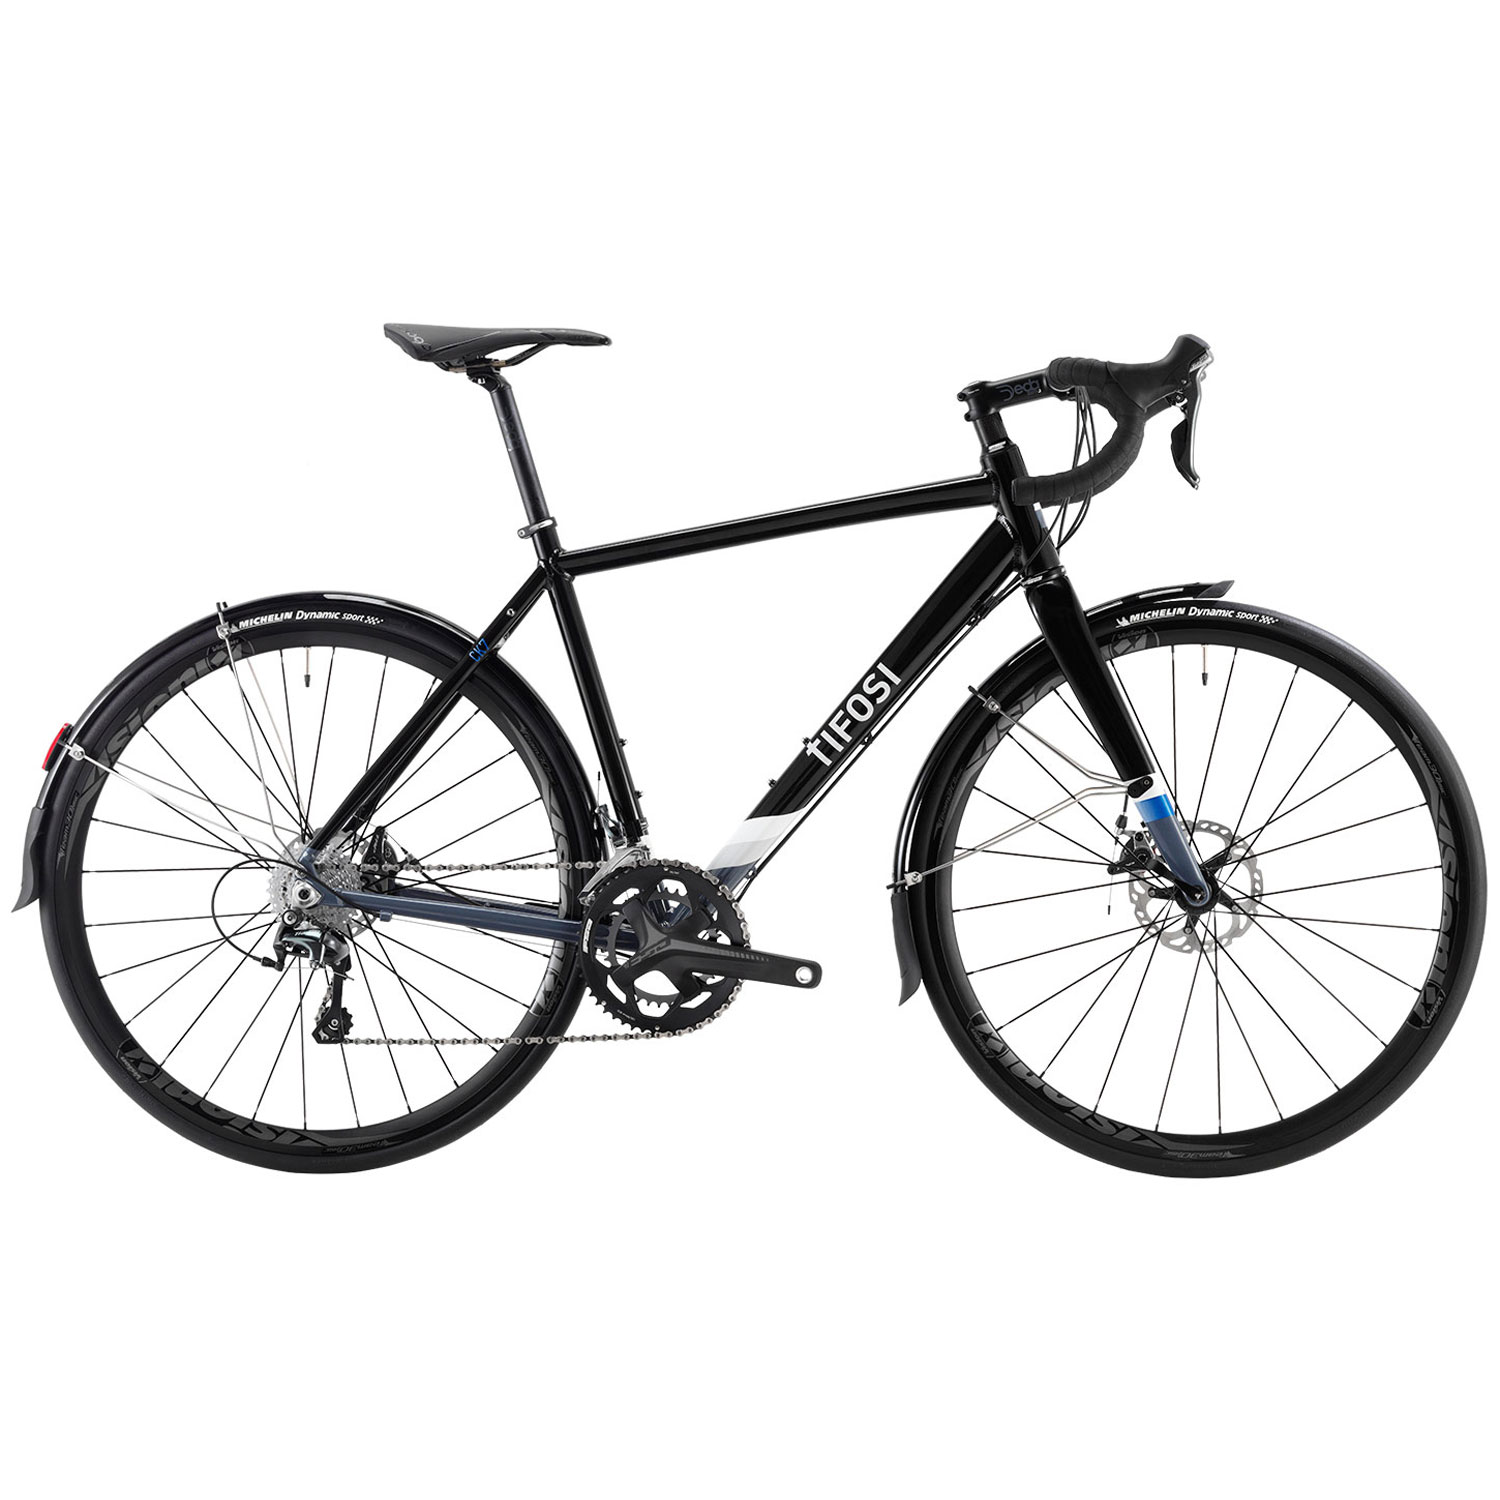 Tifosi Ck7 Disc Swish Cycles